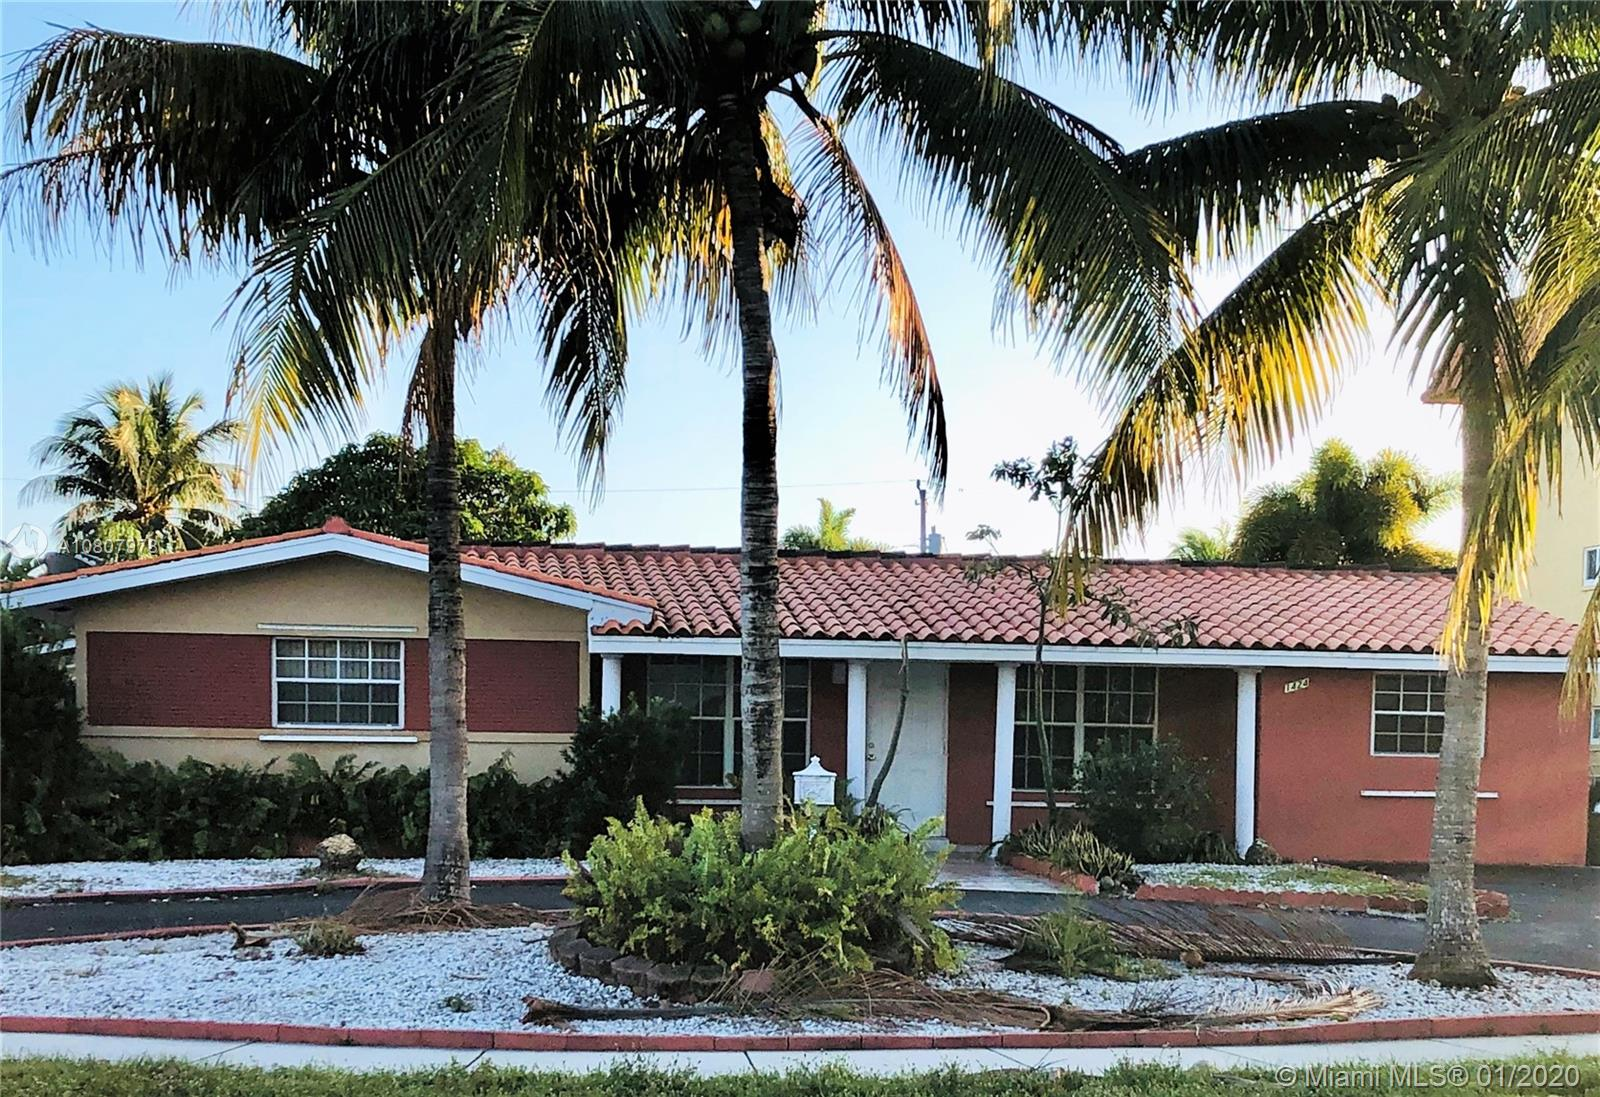 Spacious family home in the heart of Coral Ridge Isles. This beautiful home features a large open living space that is filled with natural light, wonderful kitchen with granite countertops and wood cabinets, and ceramicfloors throughout. This home boasts 2 masters bedrooms; bedroom on the right side has a separate entrance, and other bed and bath. Enjoy the large terrace that opens to an ample backyard with a variety of fruit trees and that is fenced for privacy.  Circular driveway provides ample parking for family and guests. This home is situated in a great family oriented neighborhood that is close to I95, the beaches, shopping, restaurants and more!